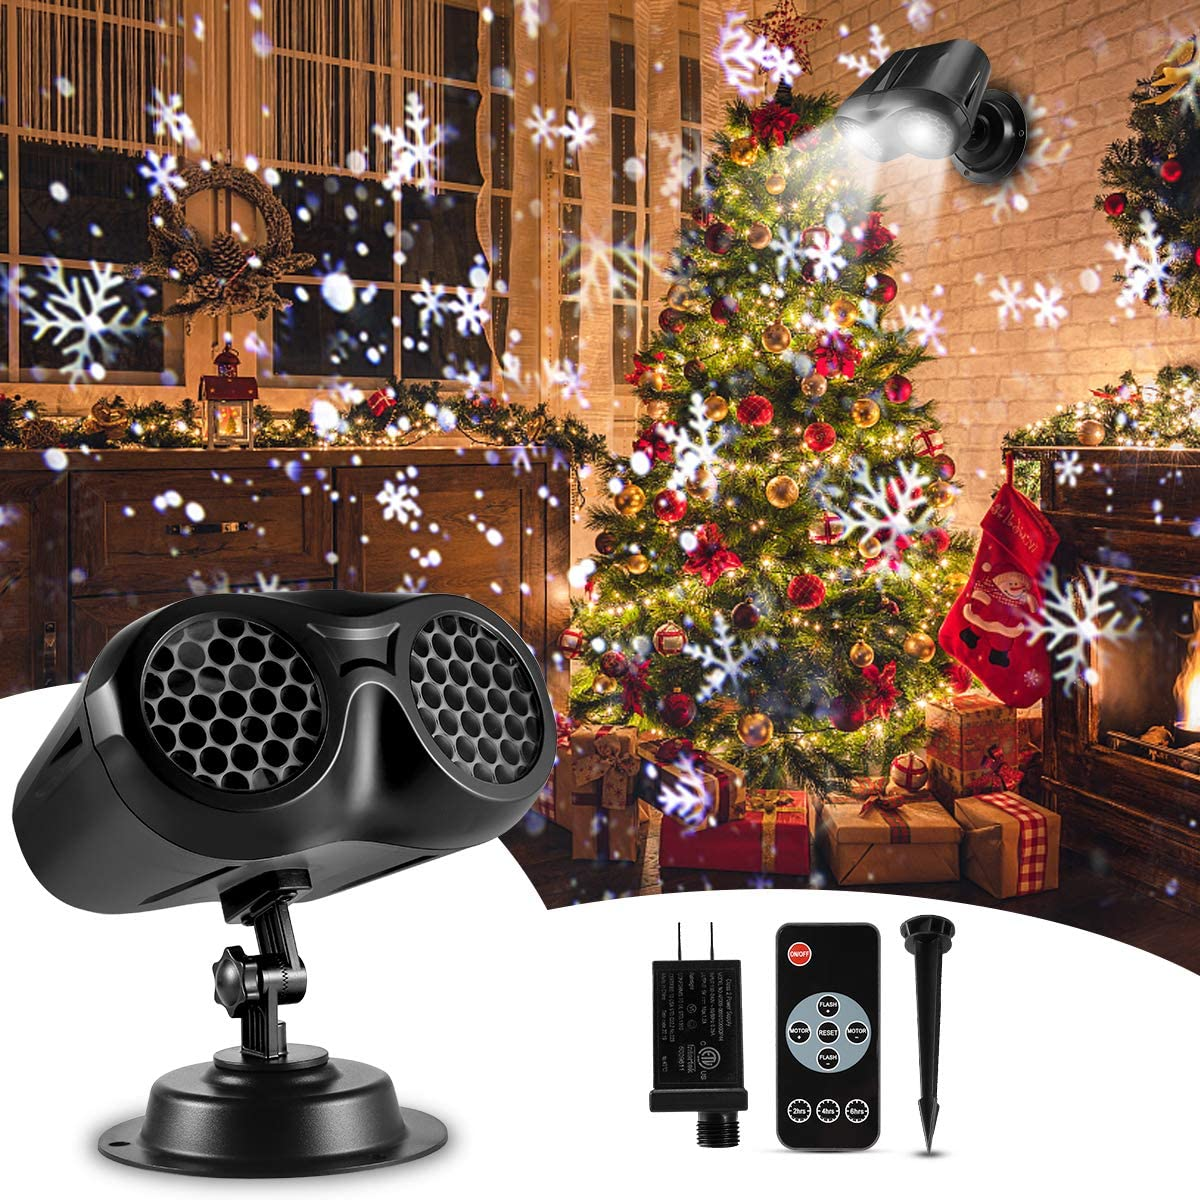 Christmas Projector Lights Outdoor Rotatin B-right Free shipping on posting reviews Light Double Max 89% OFF